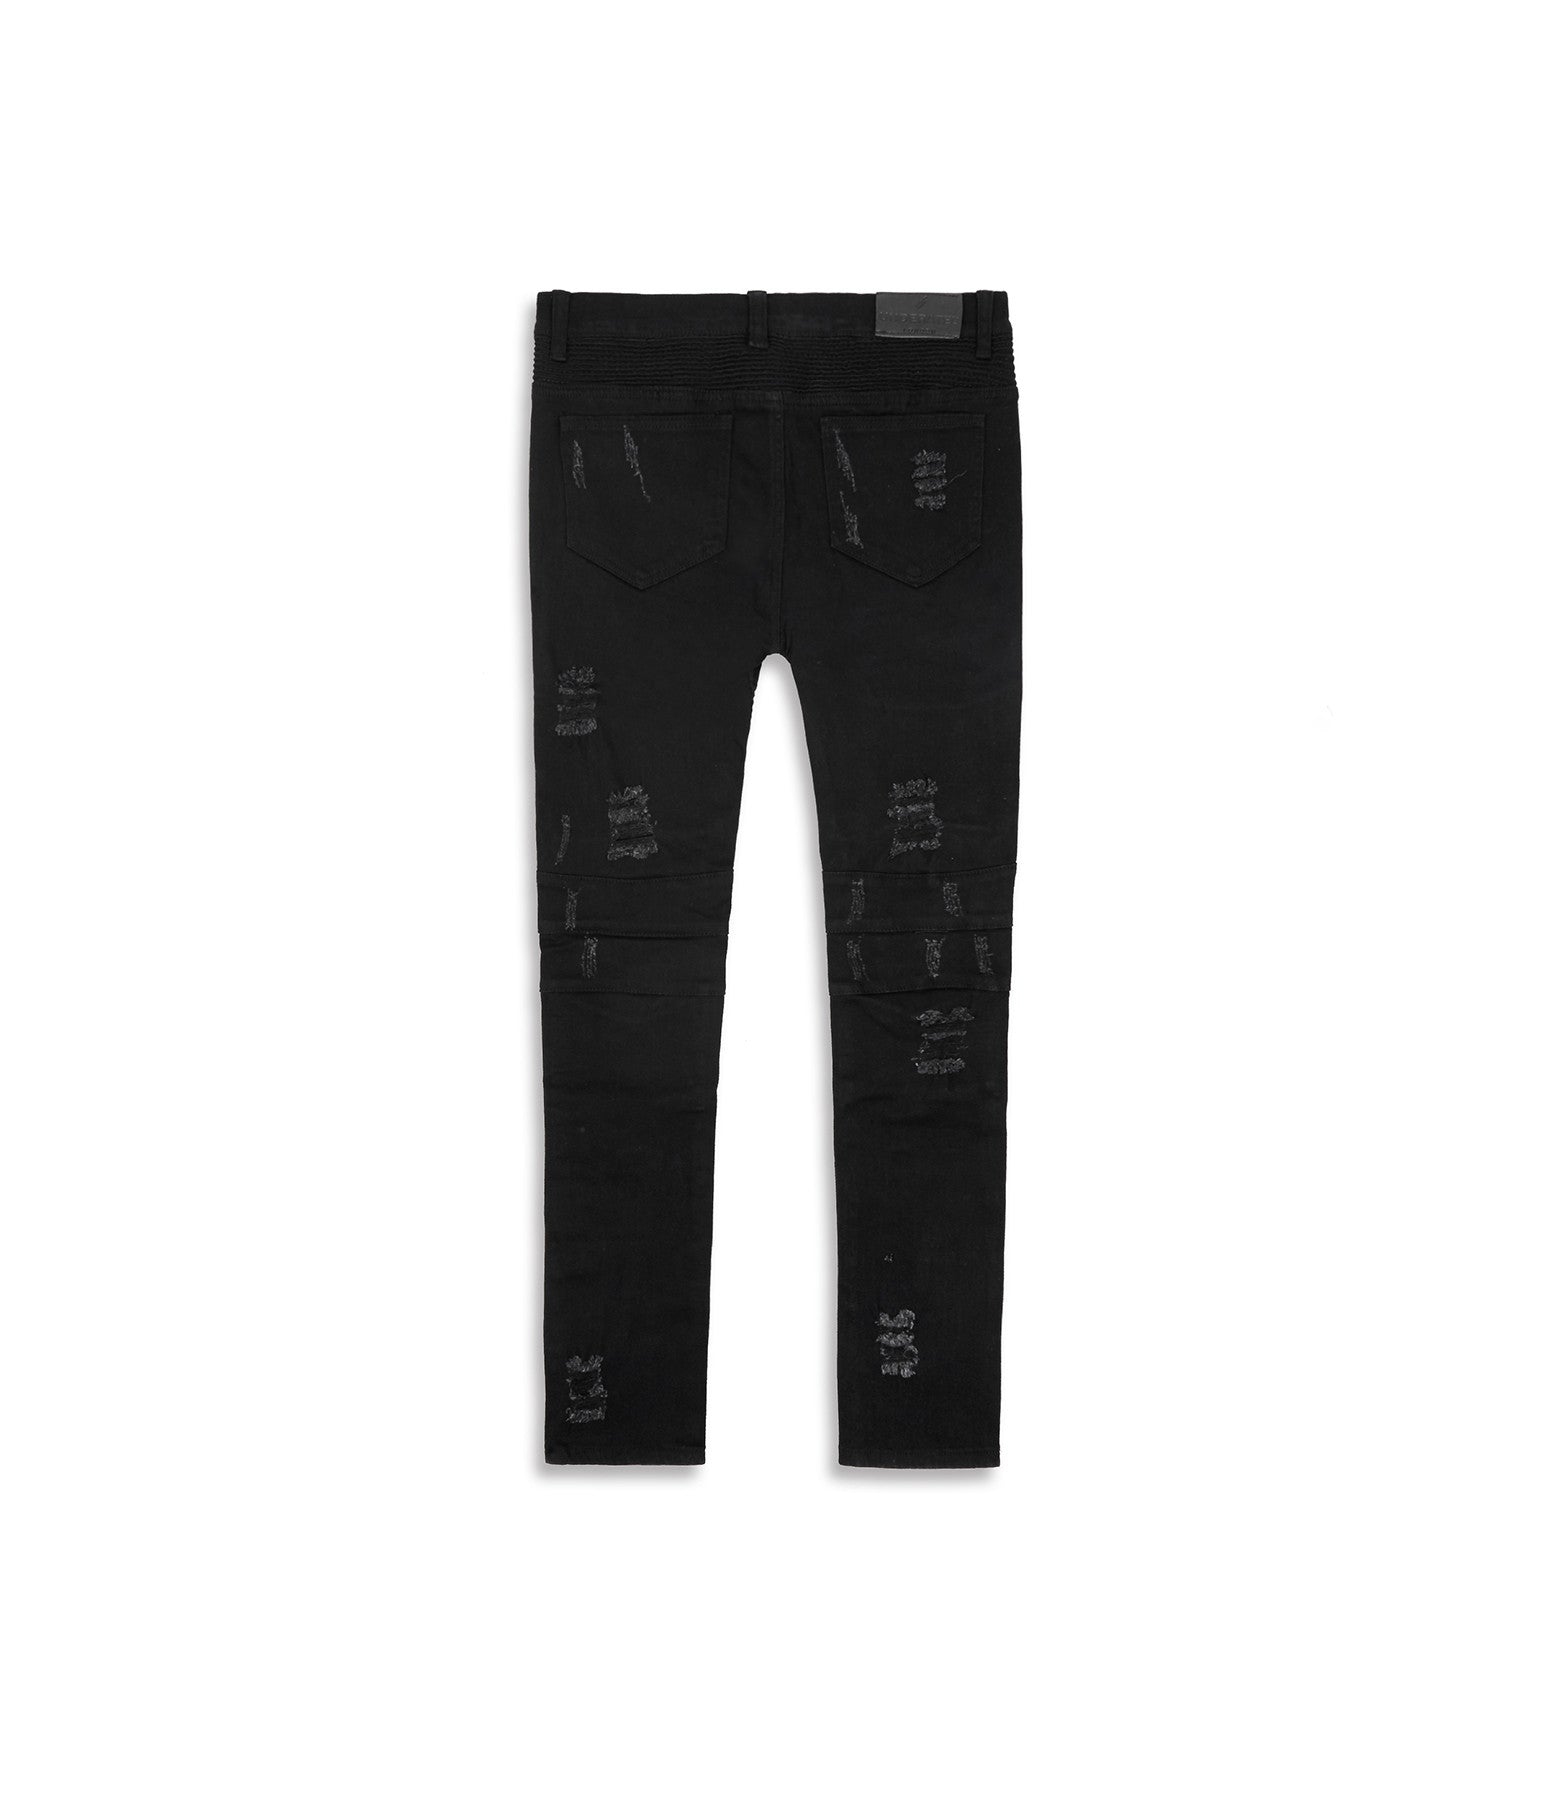 JN152 Distressed Biker Denim - Solid Black - underated london - underatedco - 12